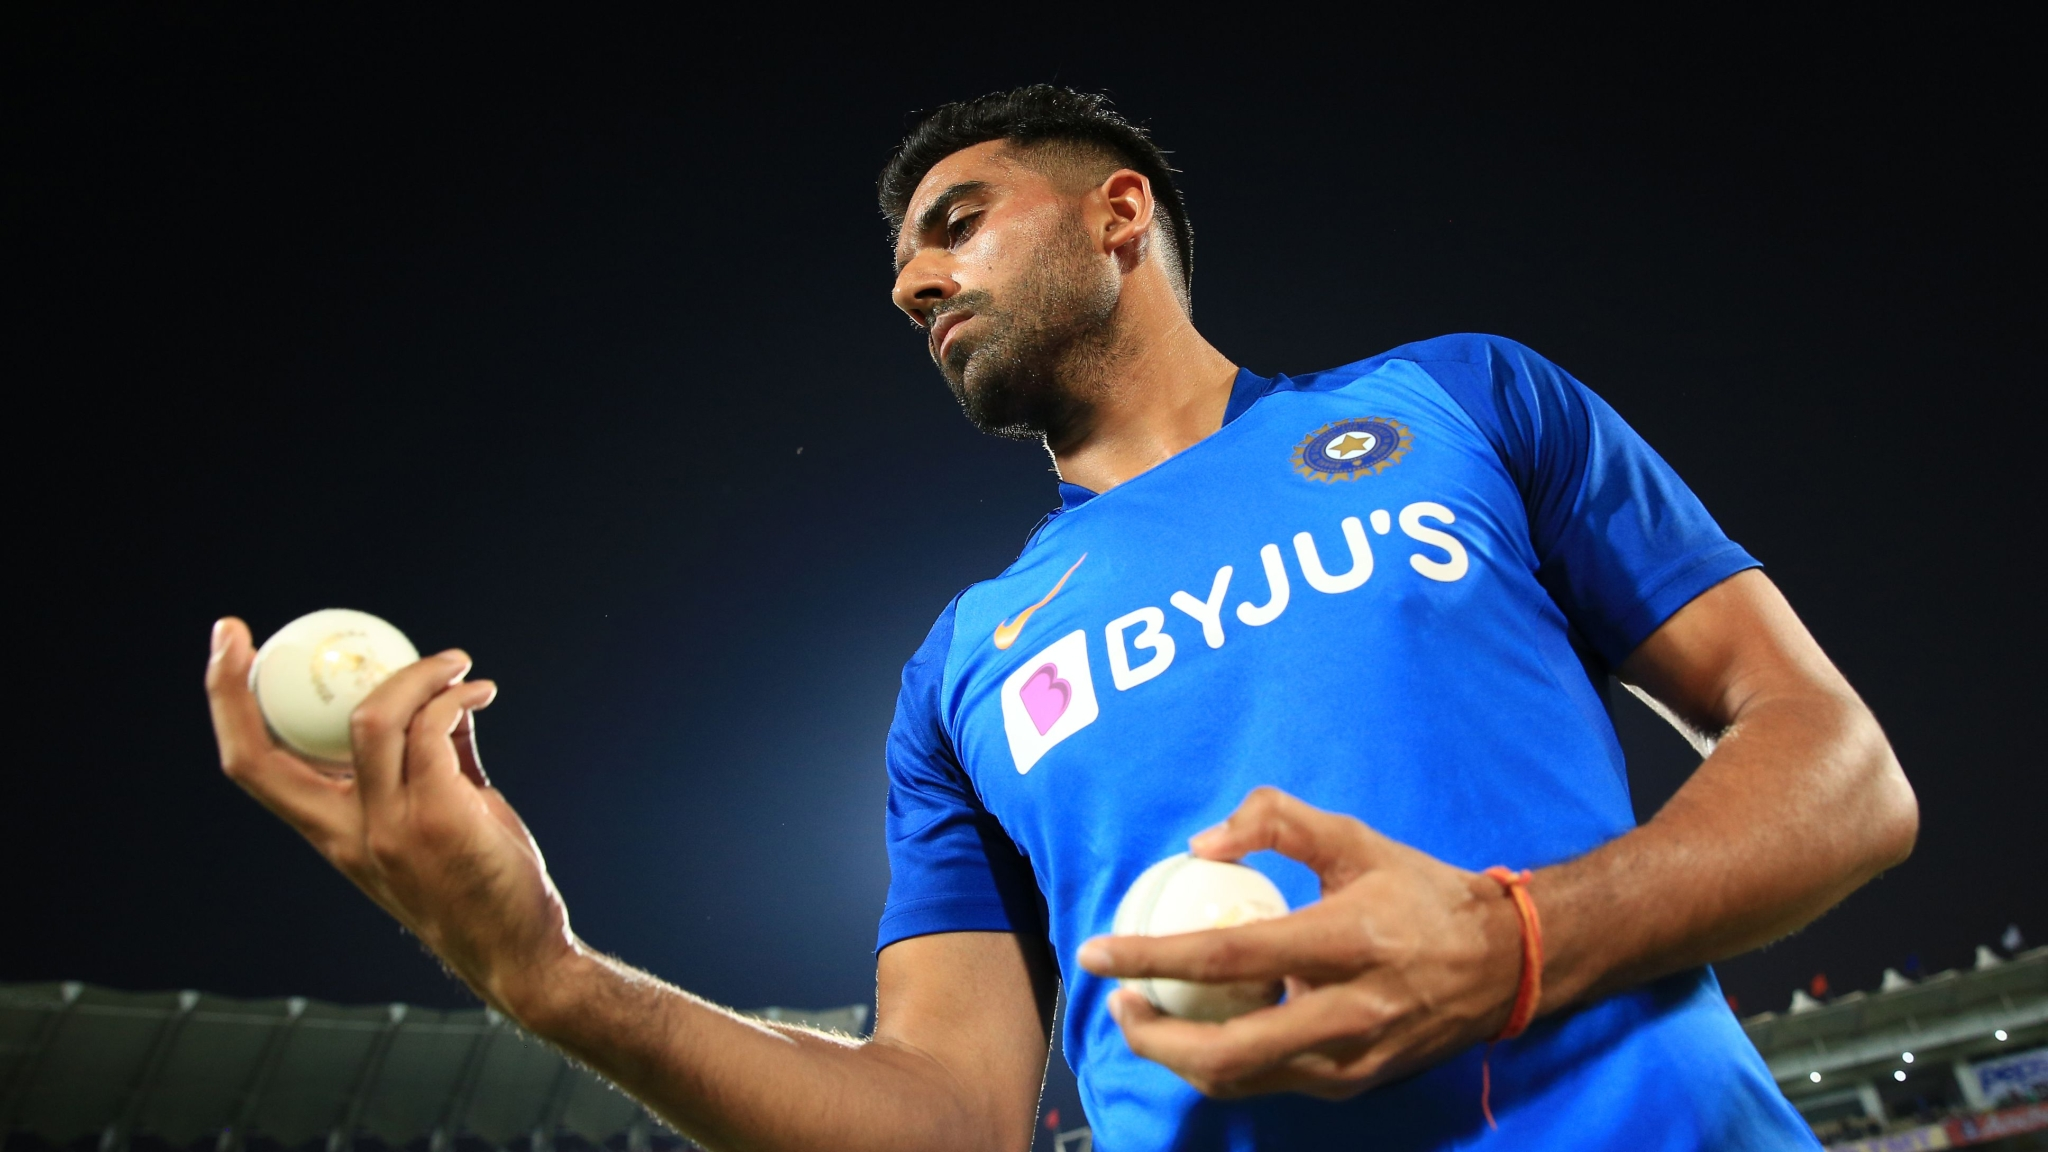 A Father's Sacrifice & a Boy's Talent - the Deepak Chahar Story